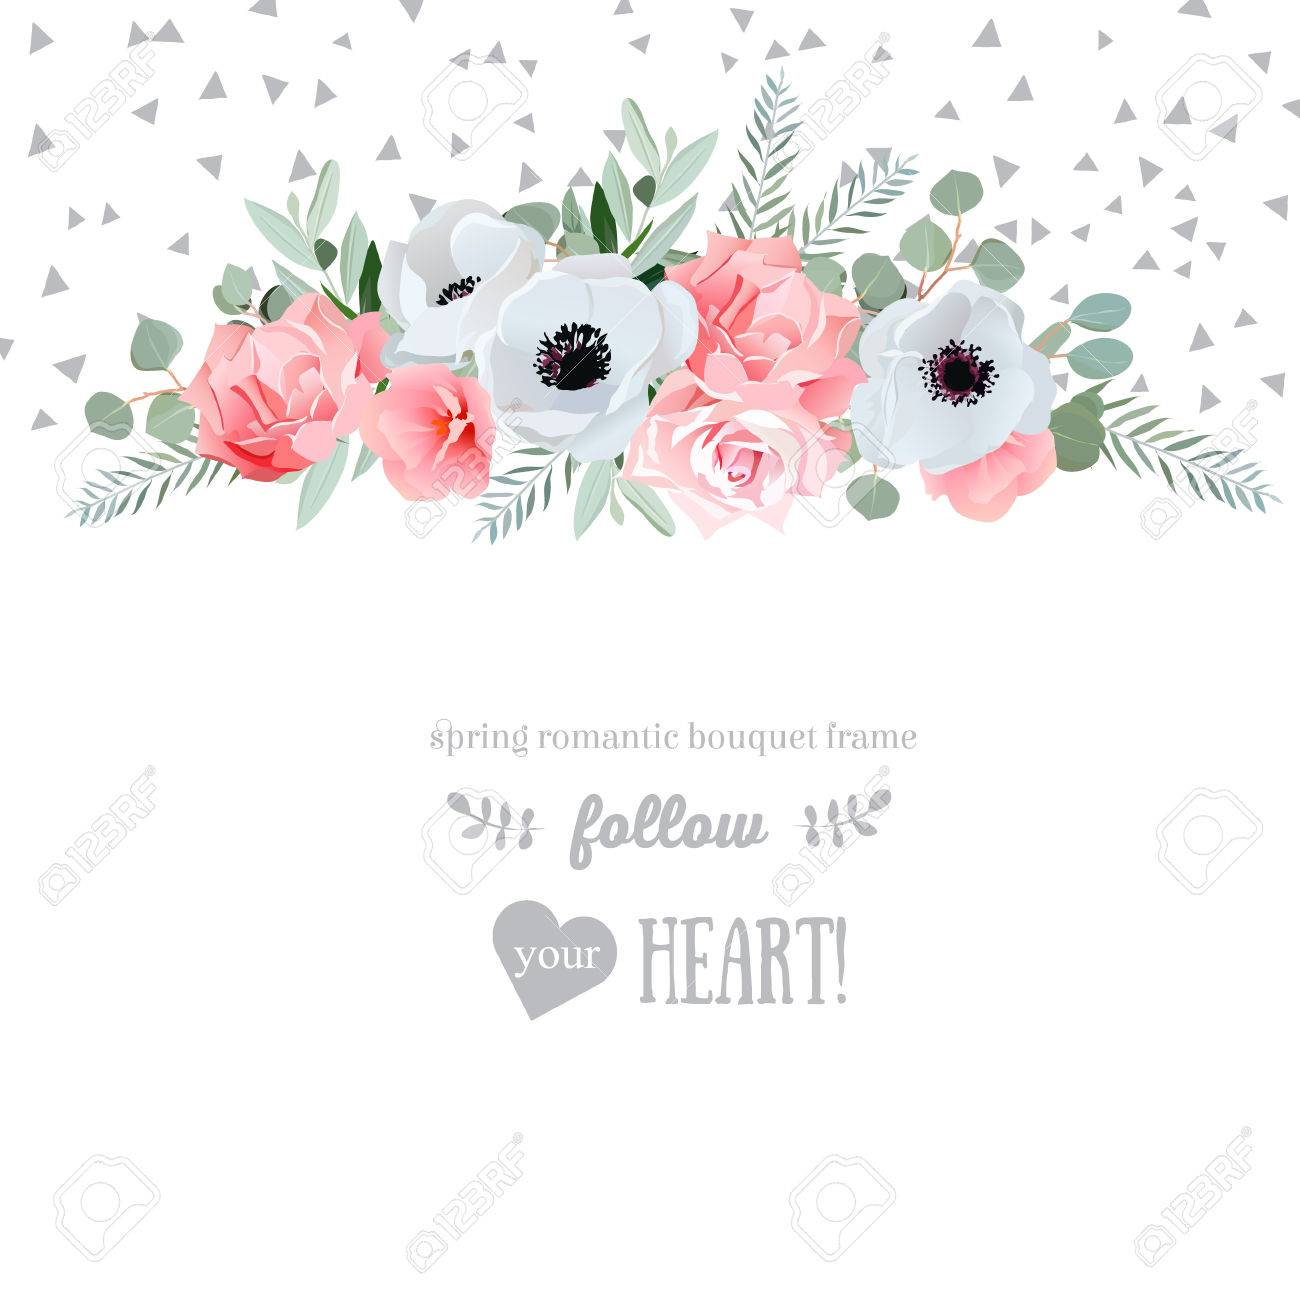 Anemone, rose, pink flowers and decorative eucaliptus leaves design card. Speckled triangle confetti backdrop. All elements are isolated and editable. - 55728590